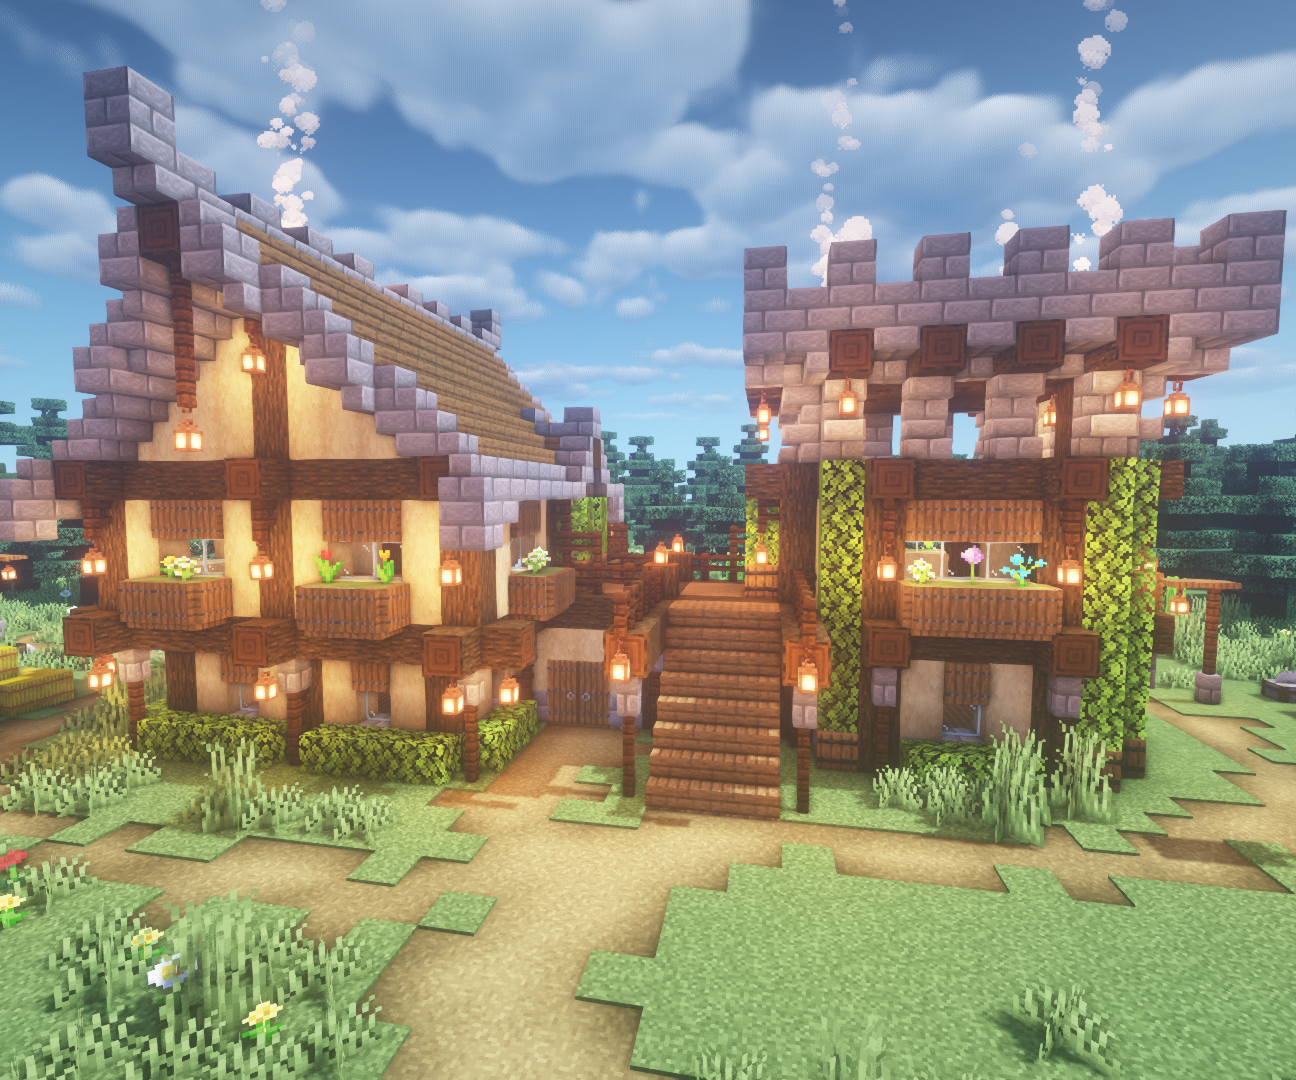 How To Build A Medieval House In Minecraft 11 Steps Instructables